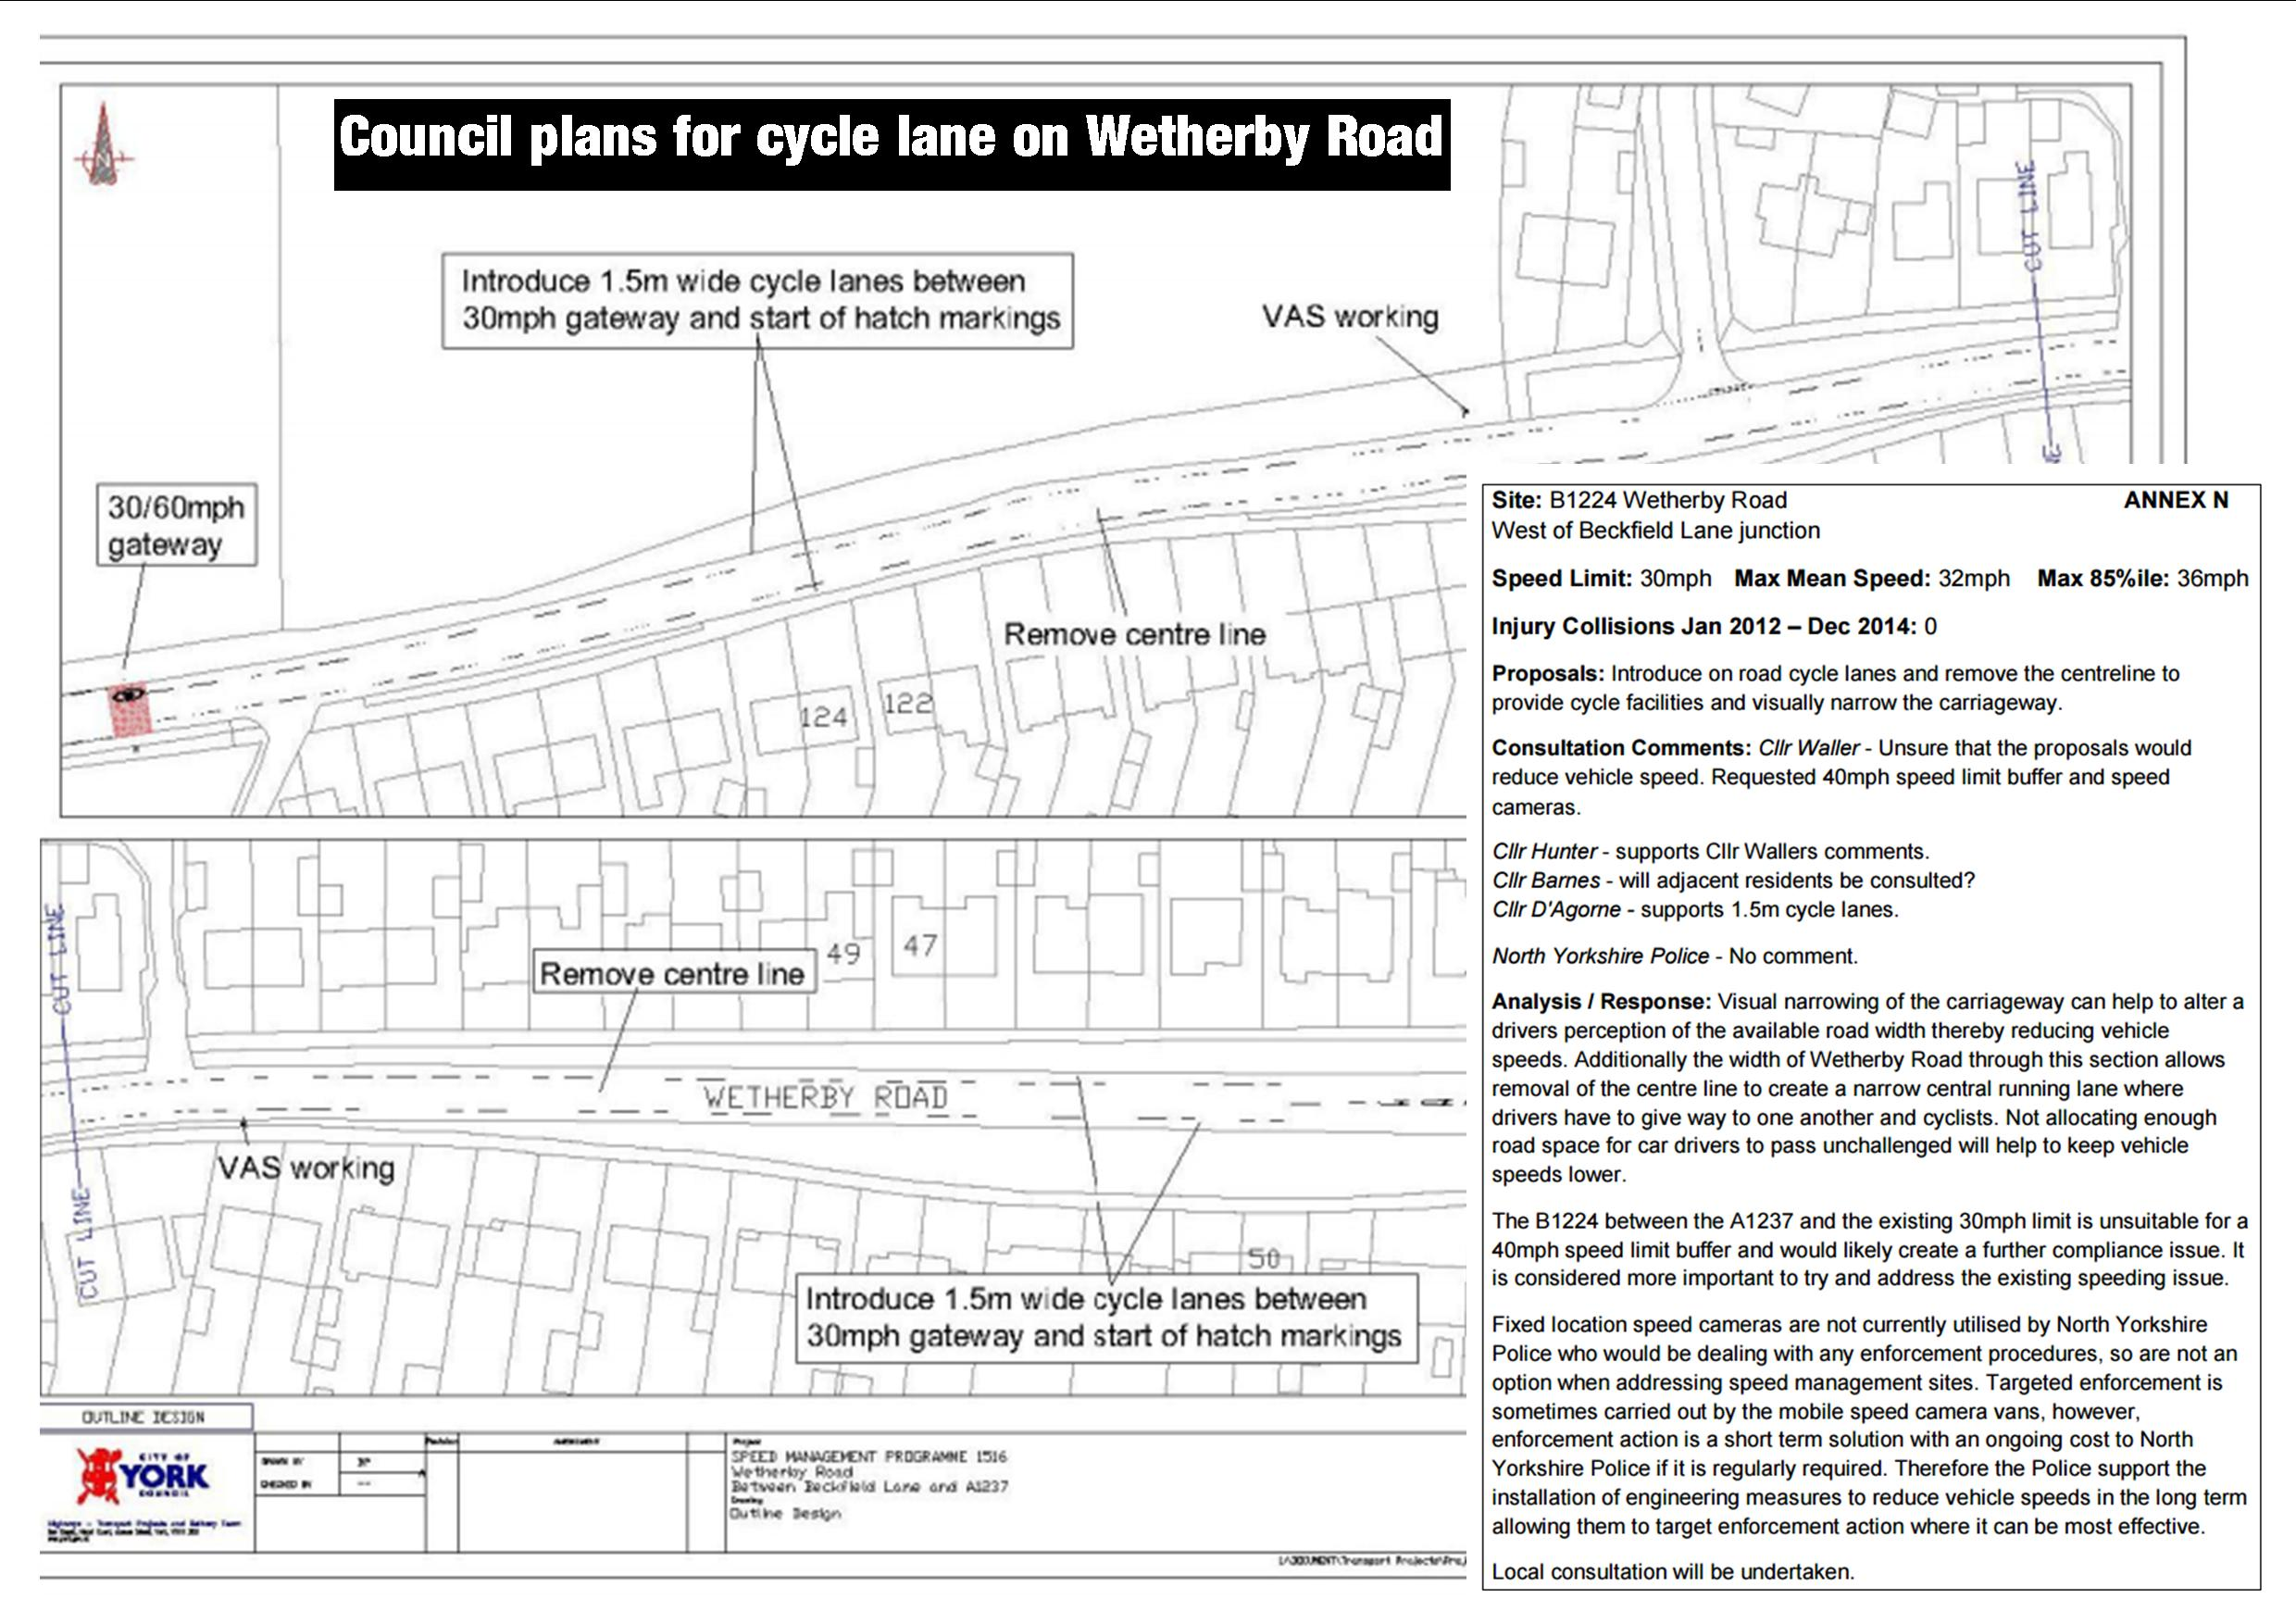 Wetherby Road proposed highway layout changes click to enlarge